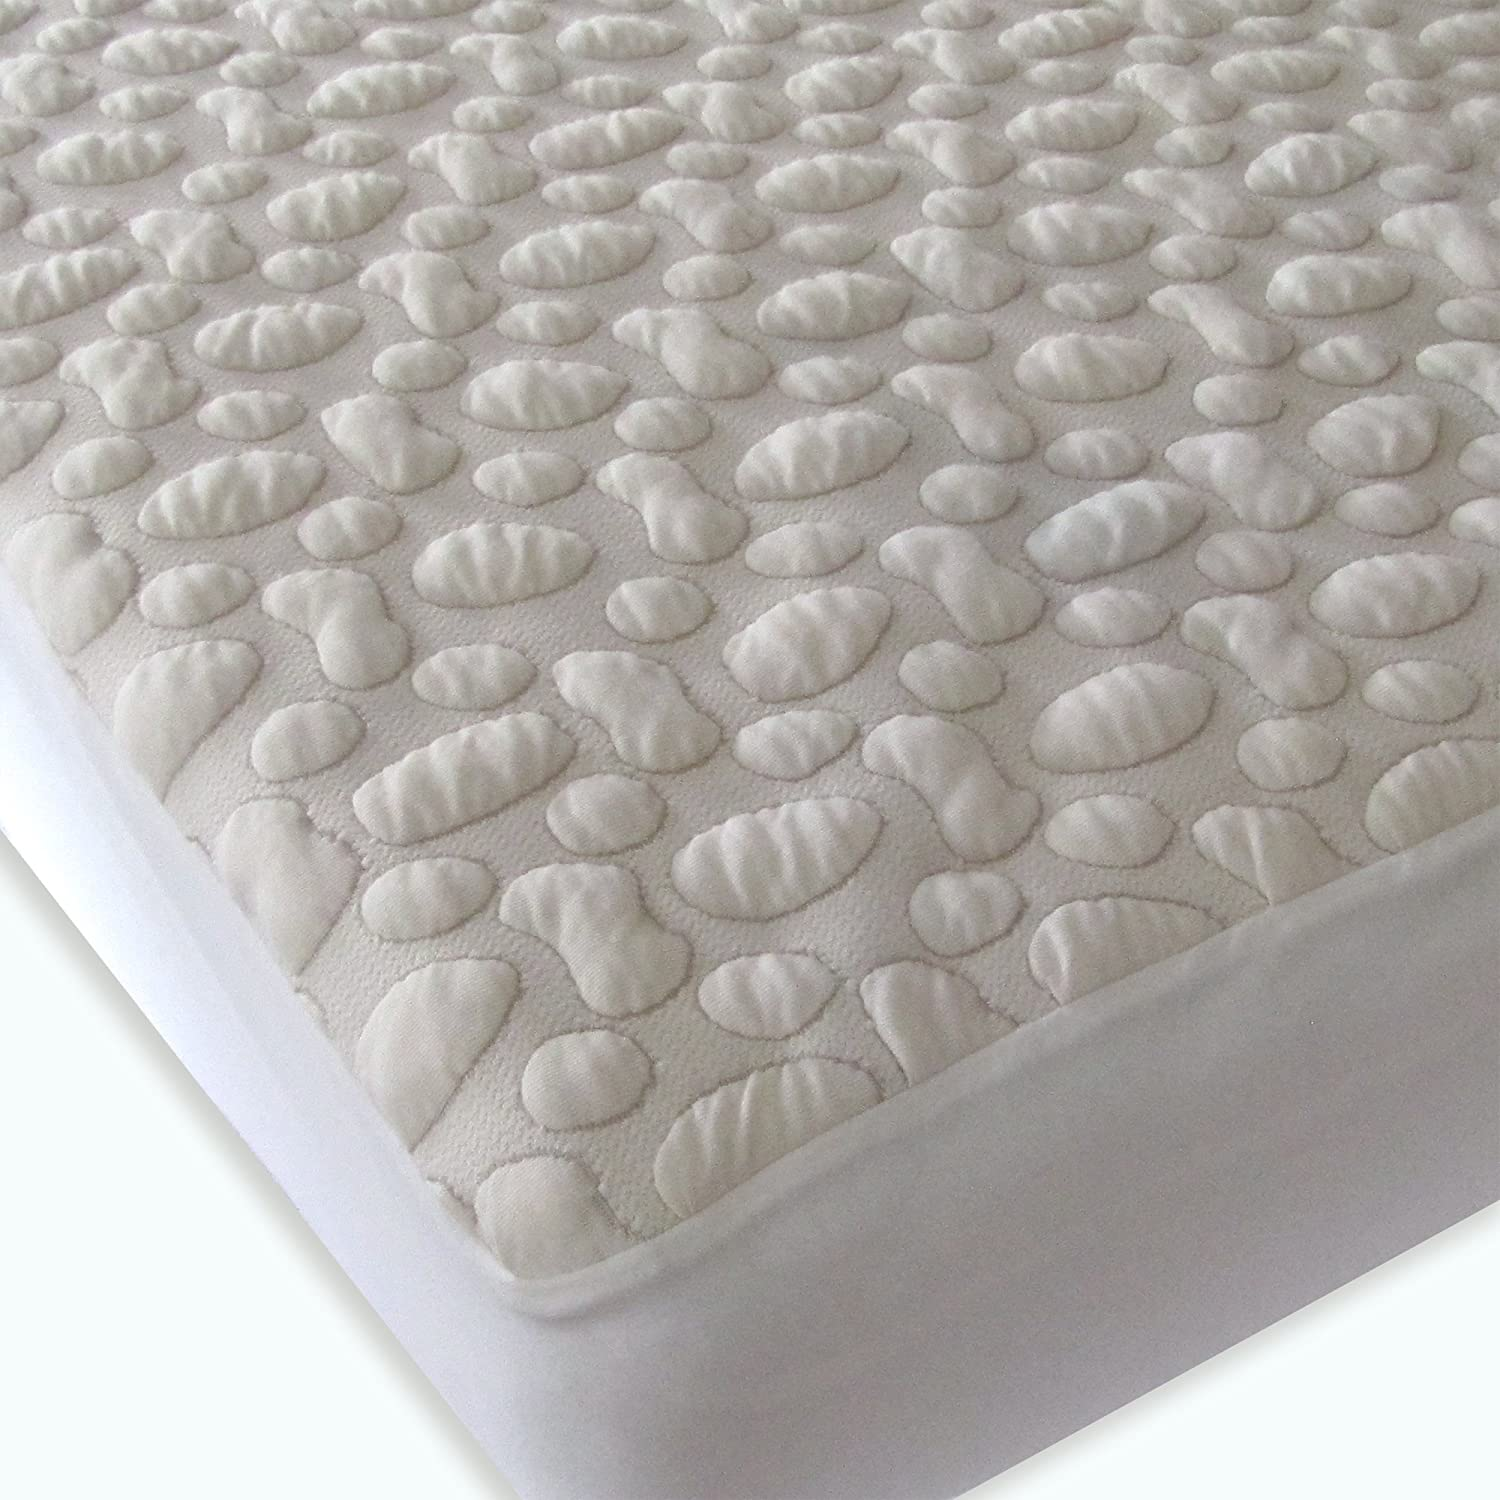 Amazon 40 Winks Organic Cotton Pebble Puff Crib Mattress Pad